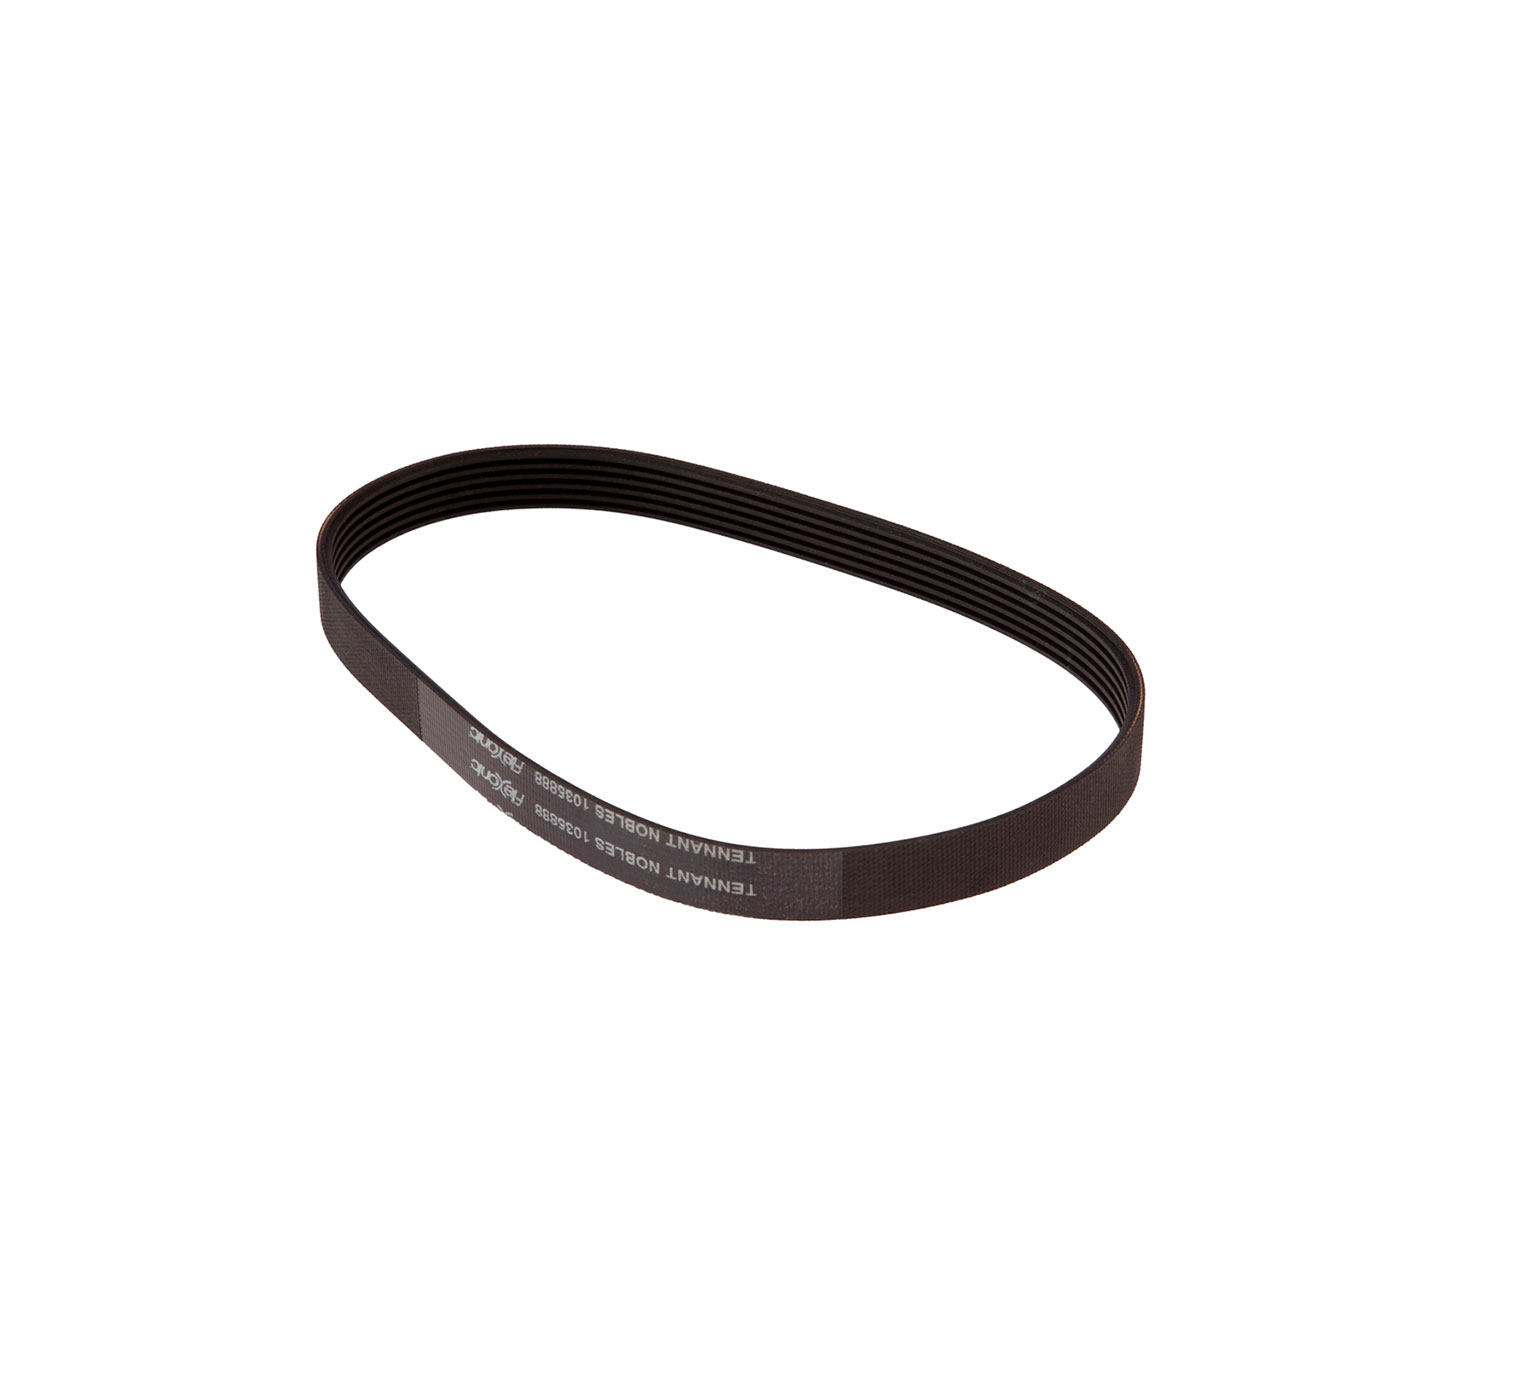 1035888 Serpentine Drive Belt - 19.68 x 0.55 in alt 1